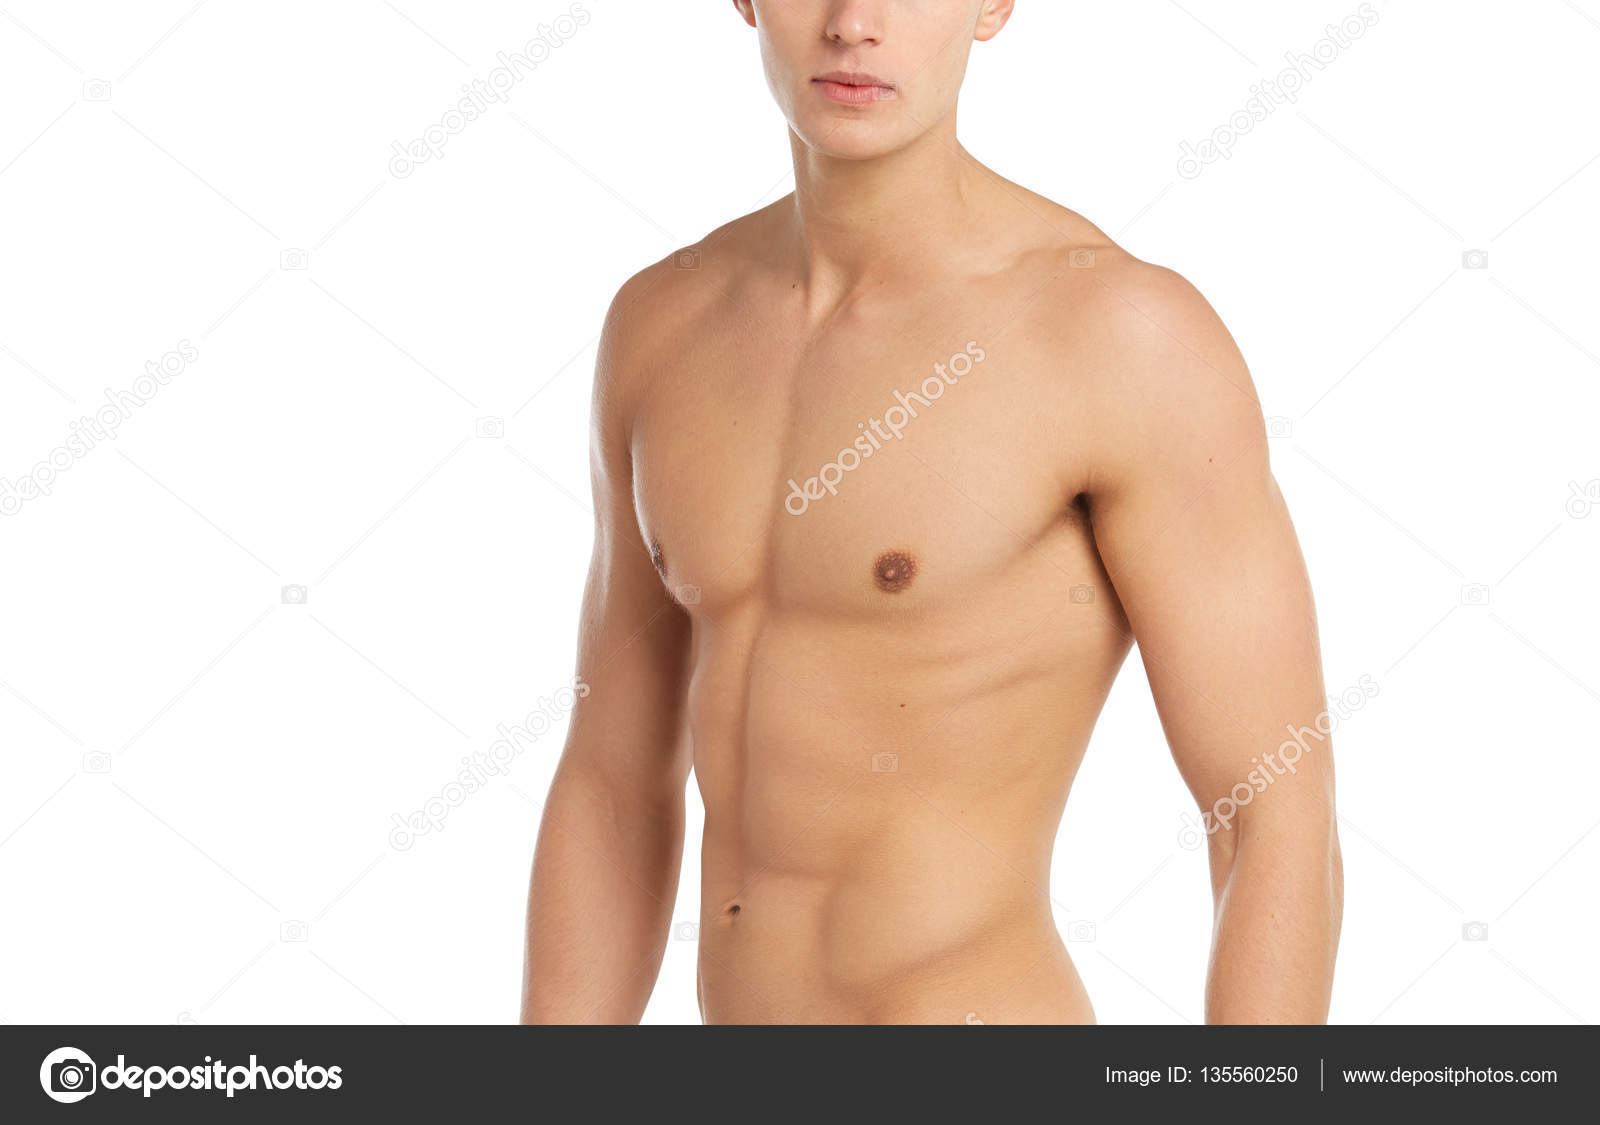 sports and fitness topic: naked sporty muscular man standing